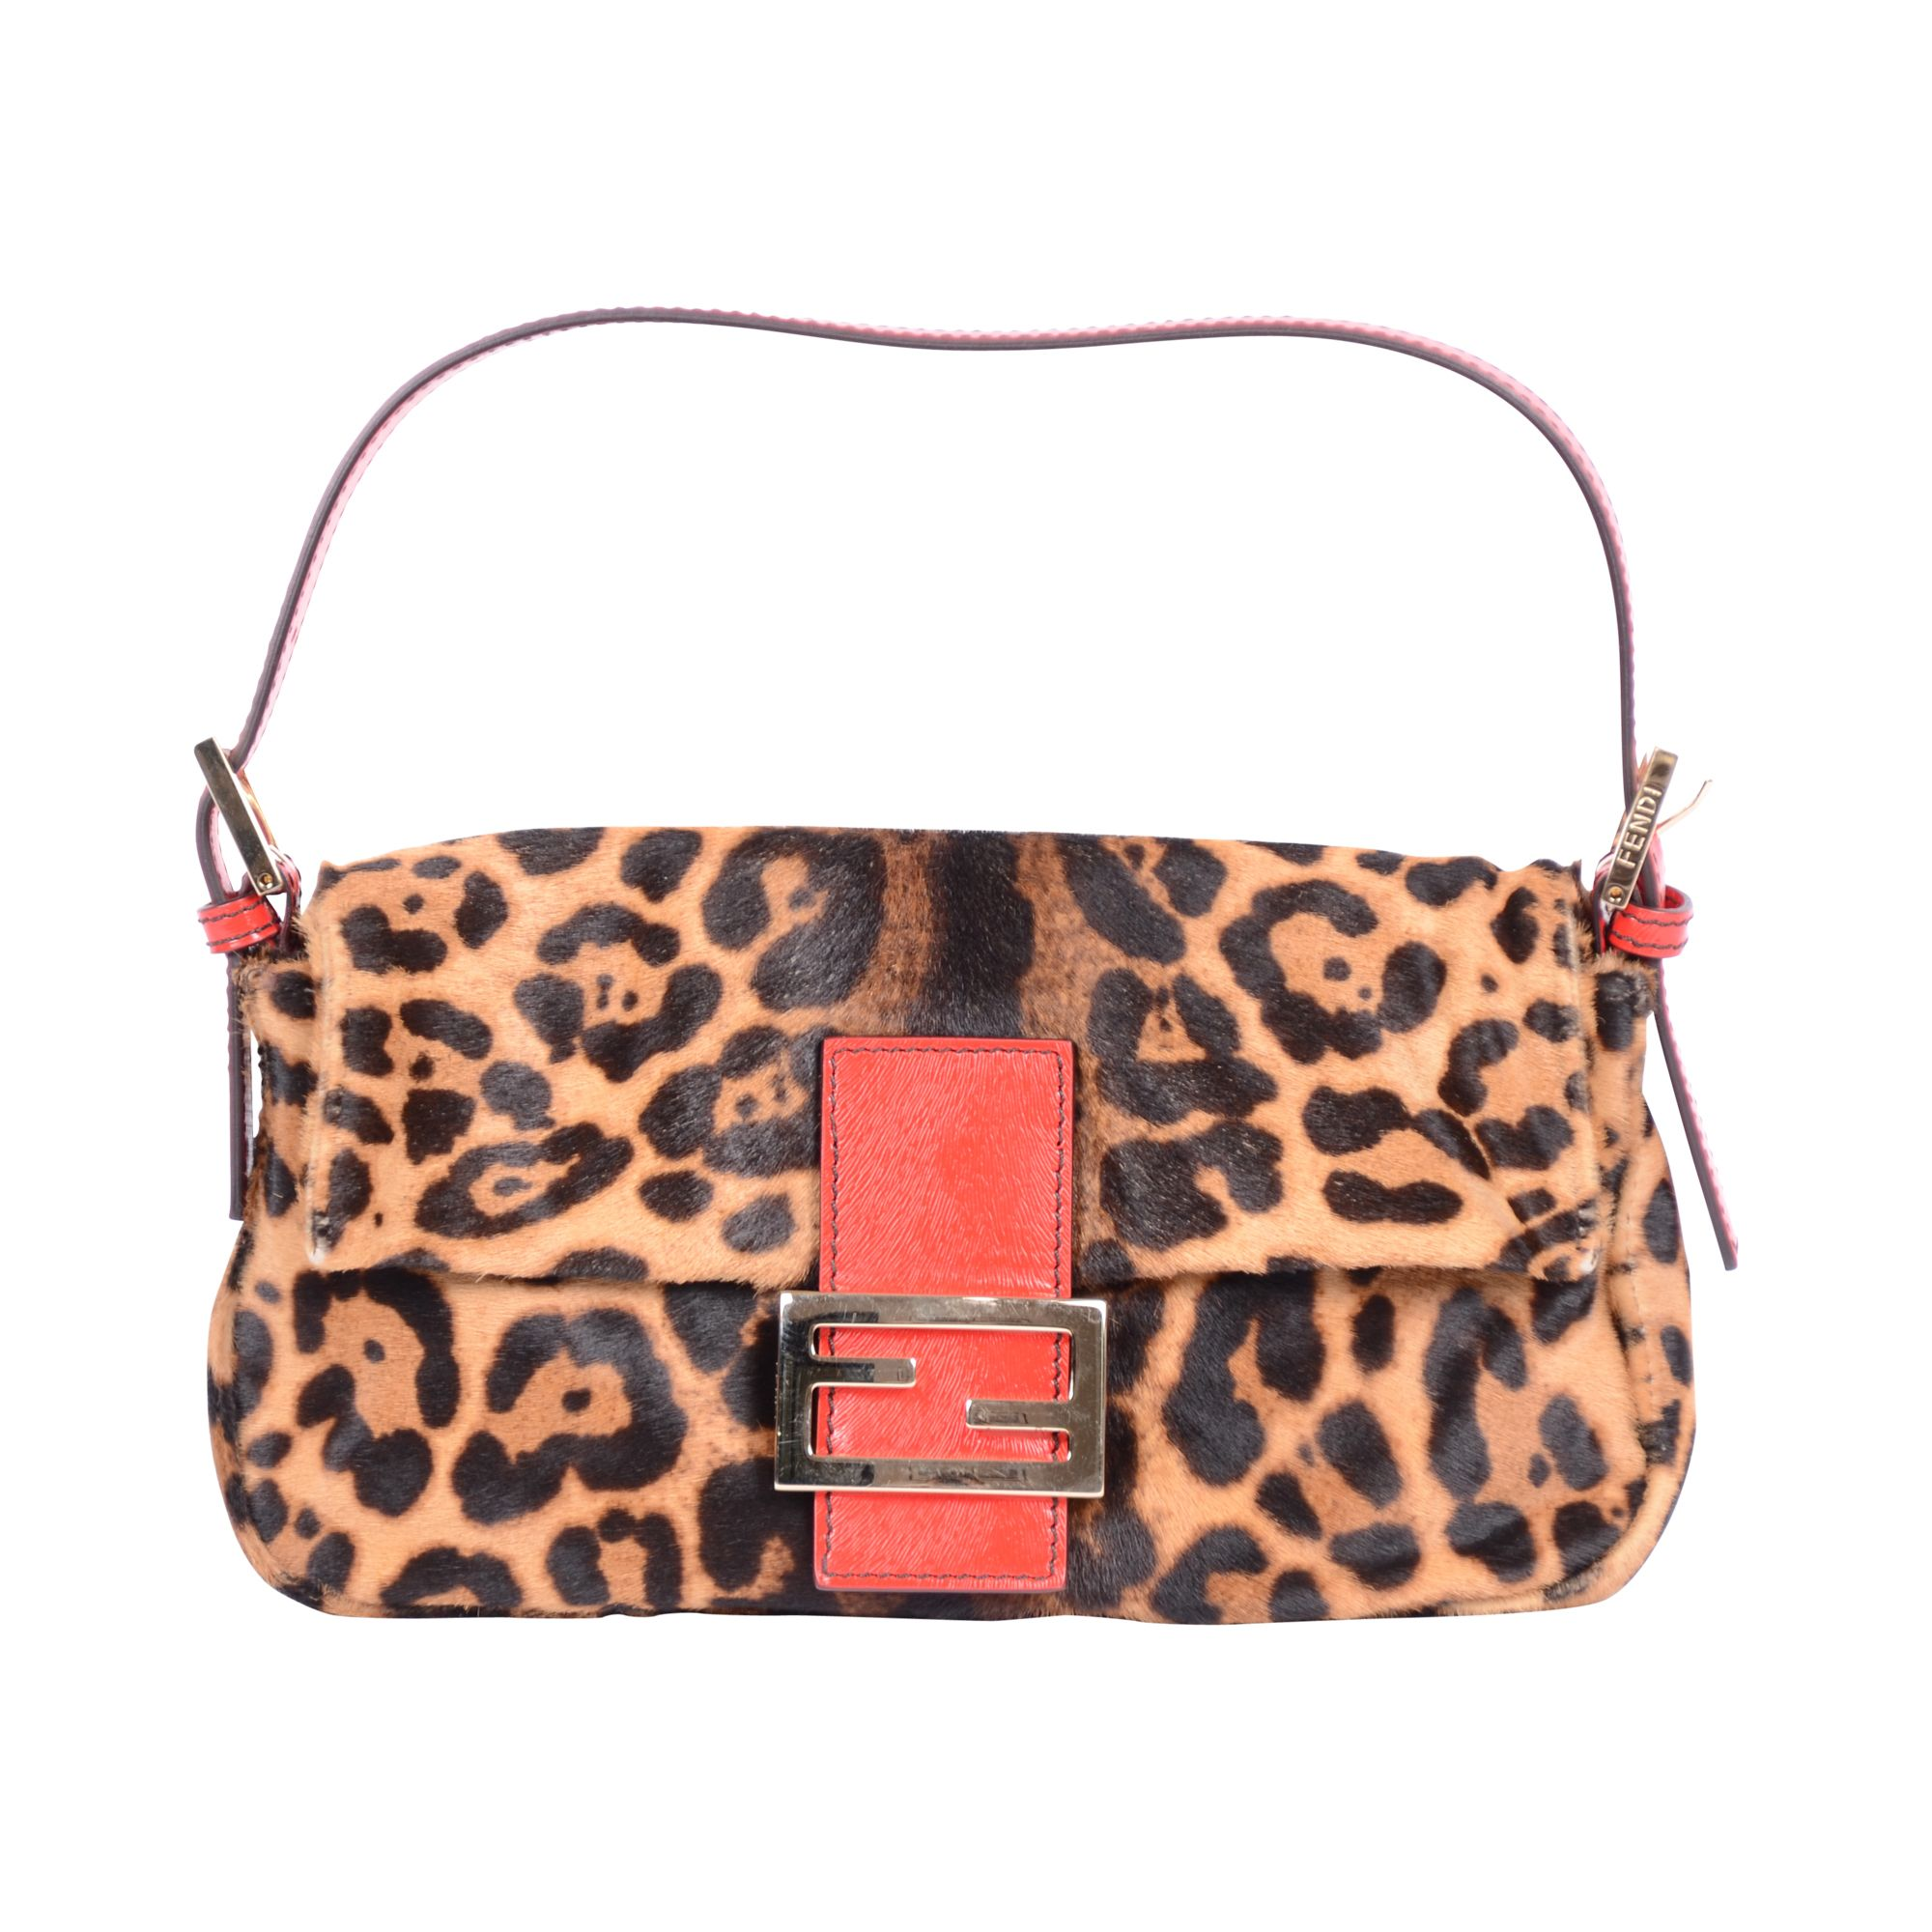 a3fbdb078ab Fendi Baguette leopard printed Bag   The Chic Selection